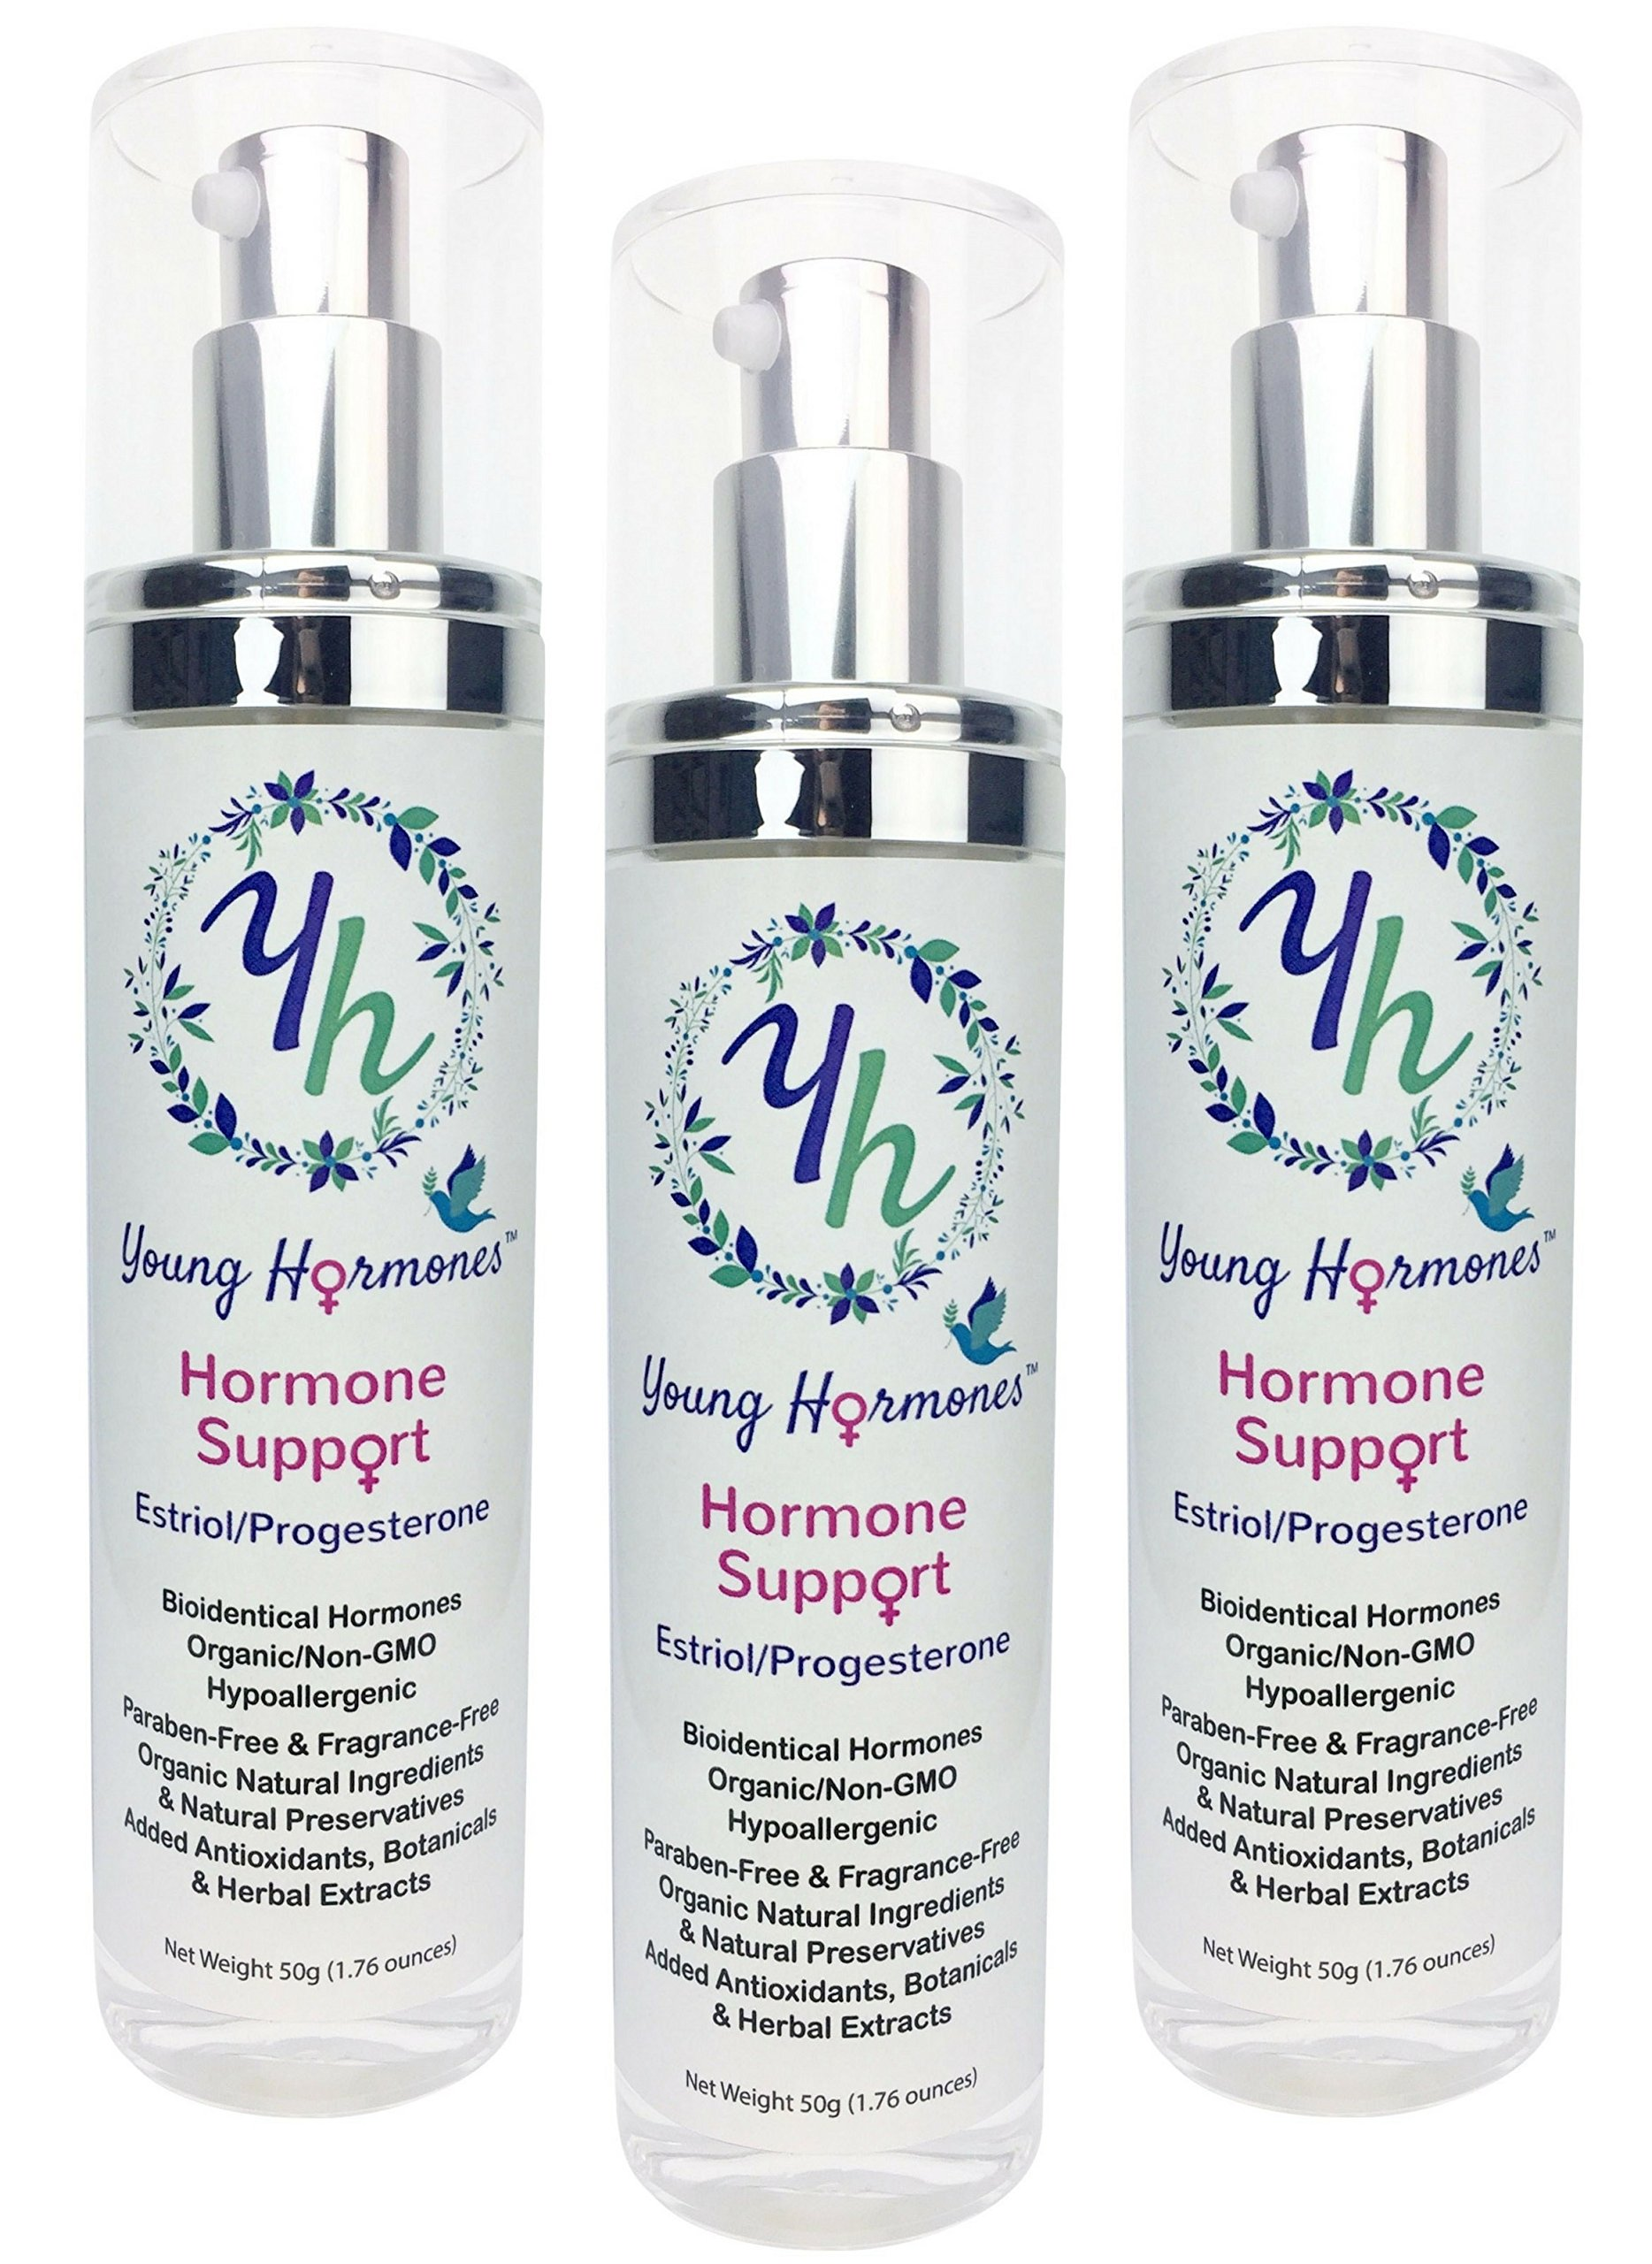 Hormone Support (3-Pack) - Bioidentical Estriol and Progesterone in an Organic Cream